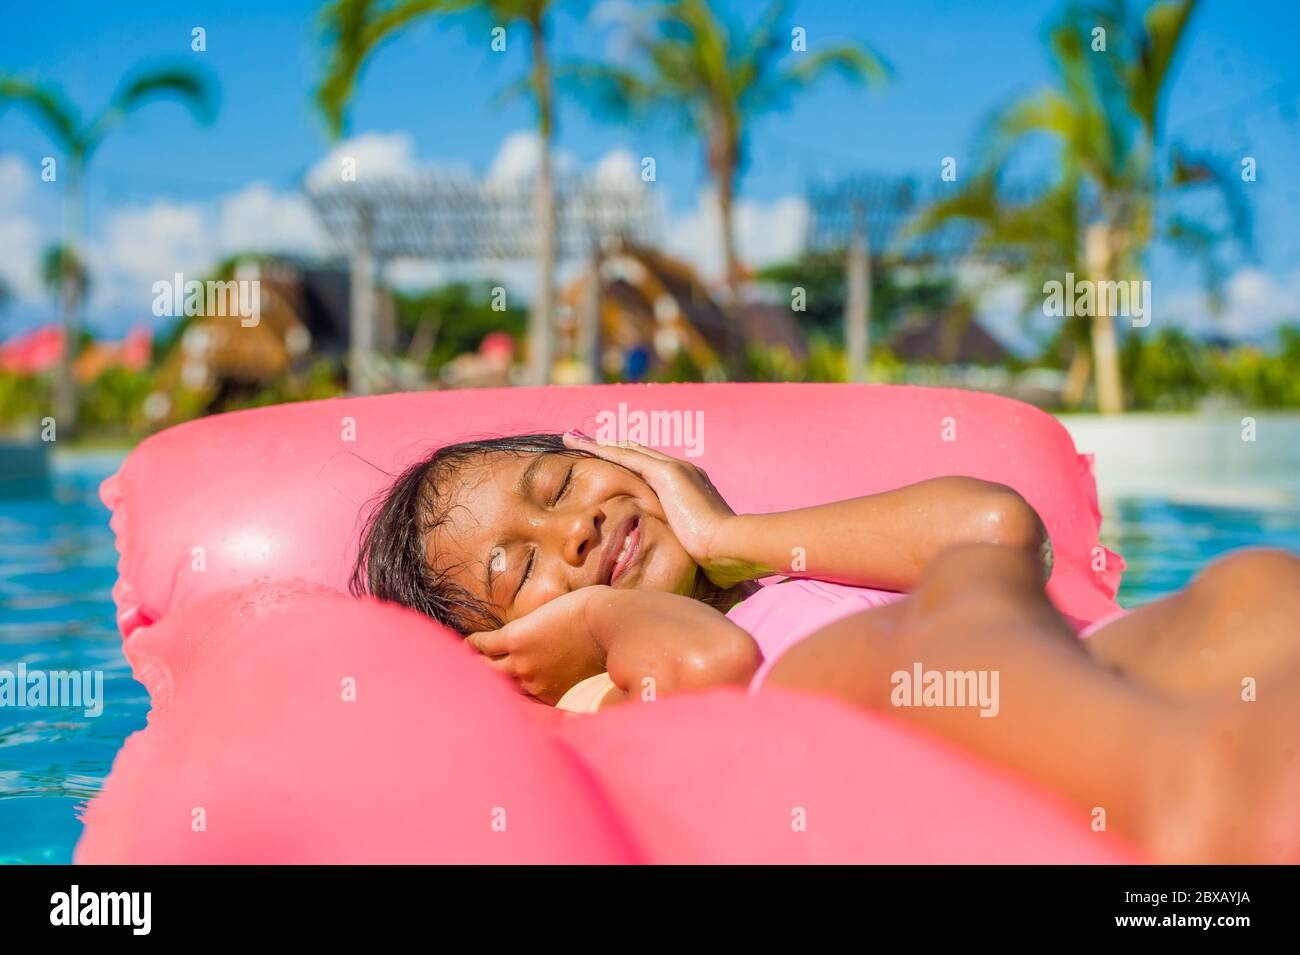 lifestyle outdoors portrait of young happy and cute female child having fun with inflatable airbed in holidays resort swimming pool smiling carefree a Stock Photo